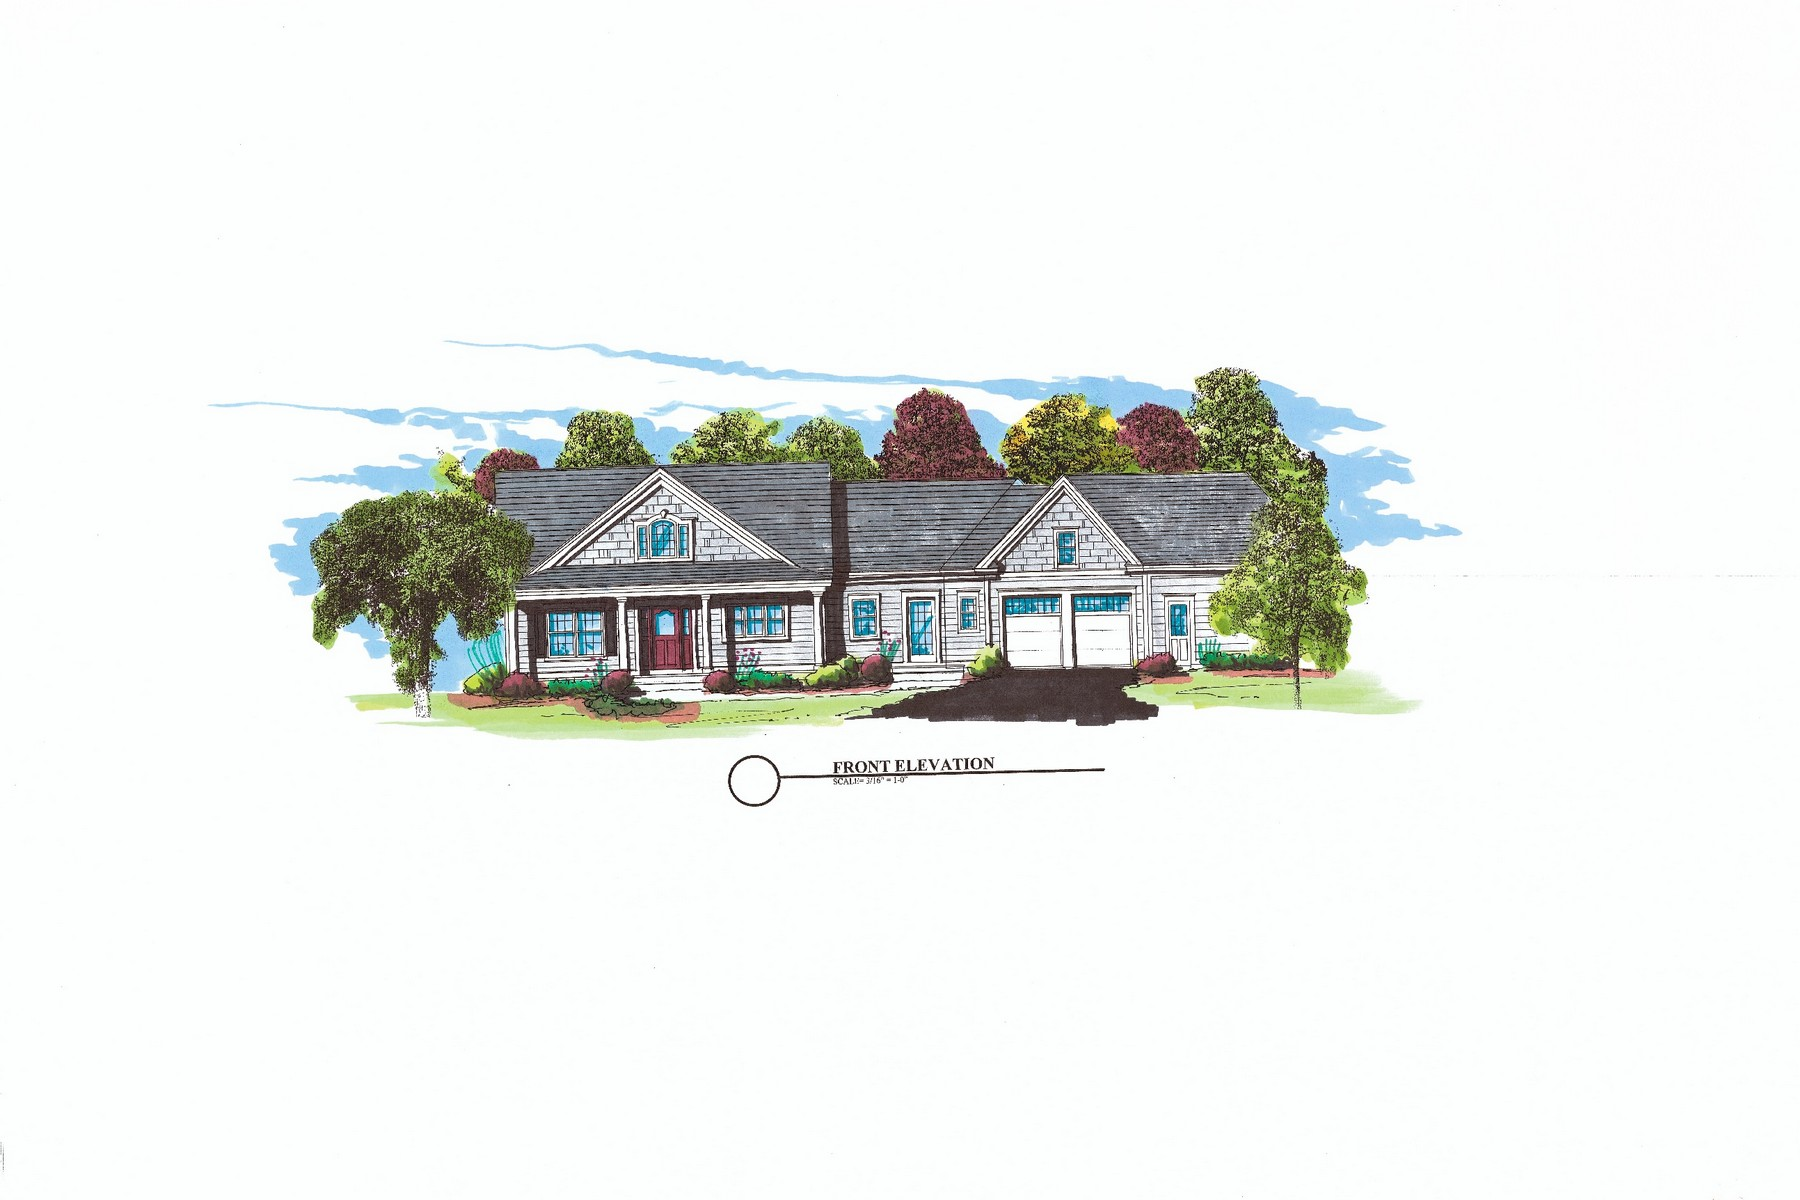 Tek Ailelik Ev için Satış at Ranch Style Home To Be Built on 2.13 Acres 16 Hill Road Old Saybrook, Connecticut, 06475 Amerika Birleşik Devletleri